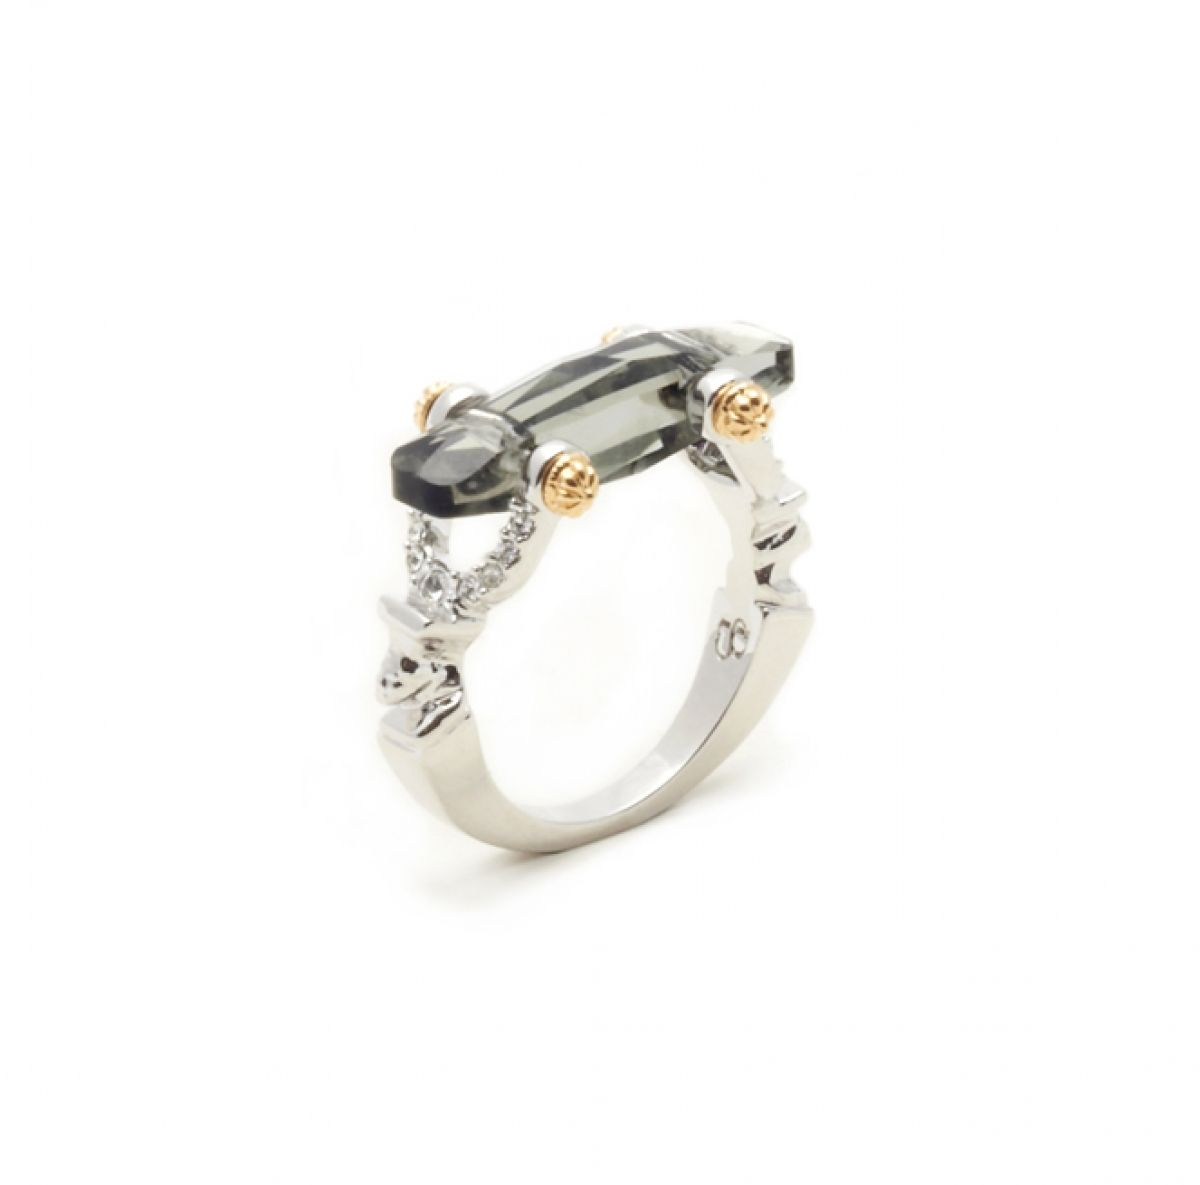 Watch How to Build a Fashion Ring Collection for Men video